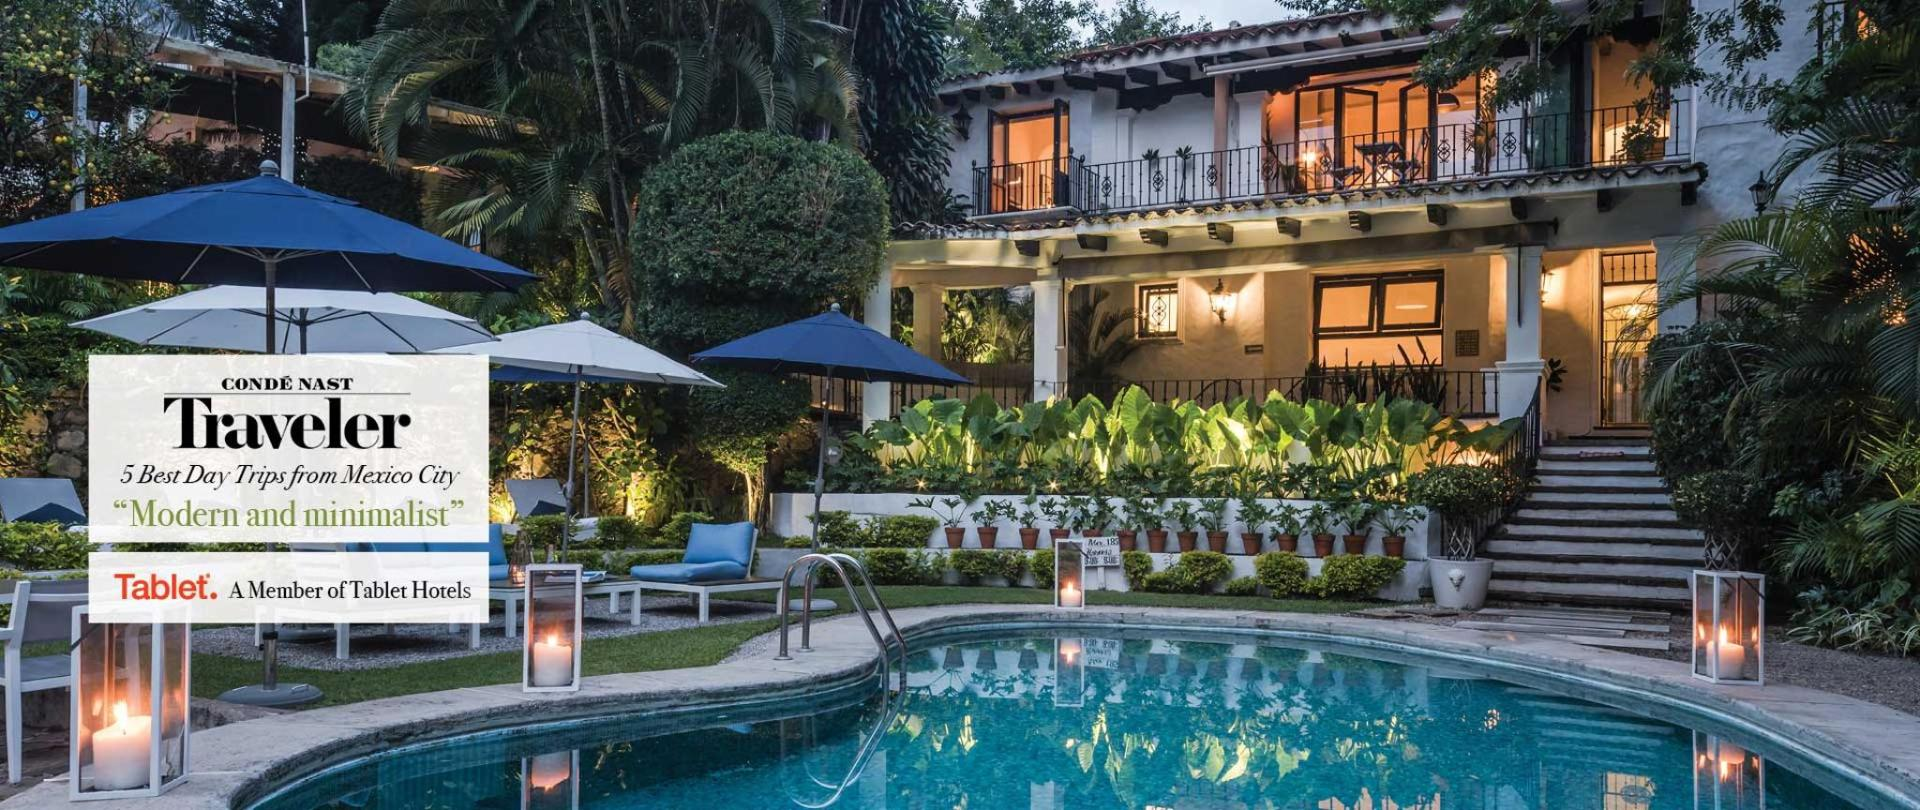 Perfect location in downtown. A few walking steps from the iconic Palace Of Hernan Cortes.  Las Casas B+B Boutique Hotel, Spa  & Restaurant in Cuernavaca.